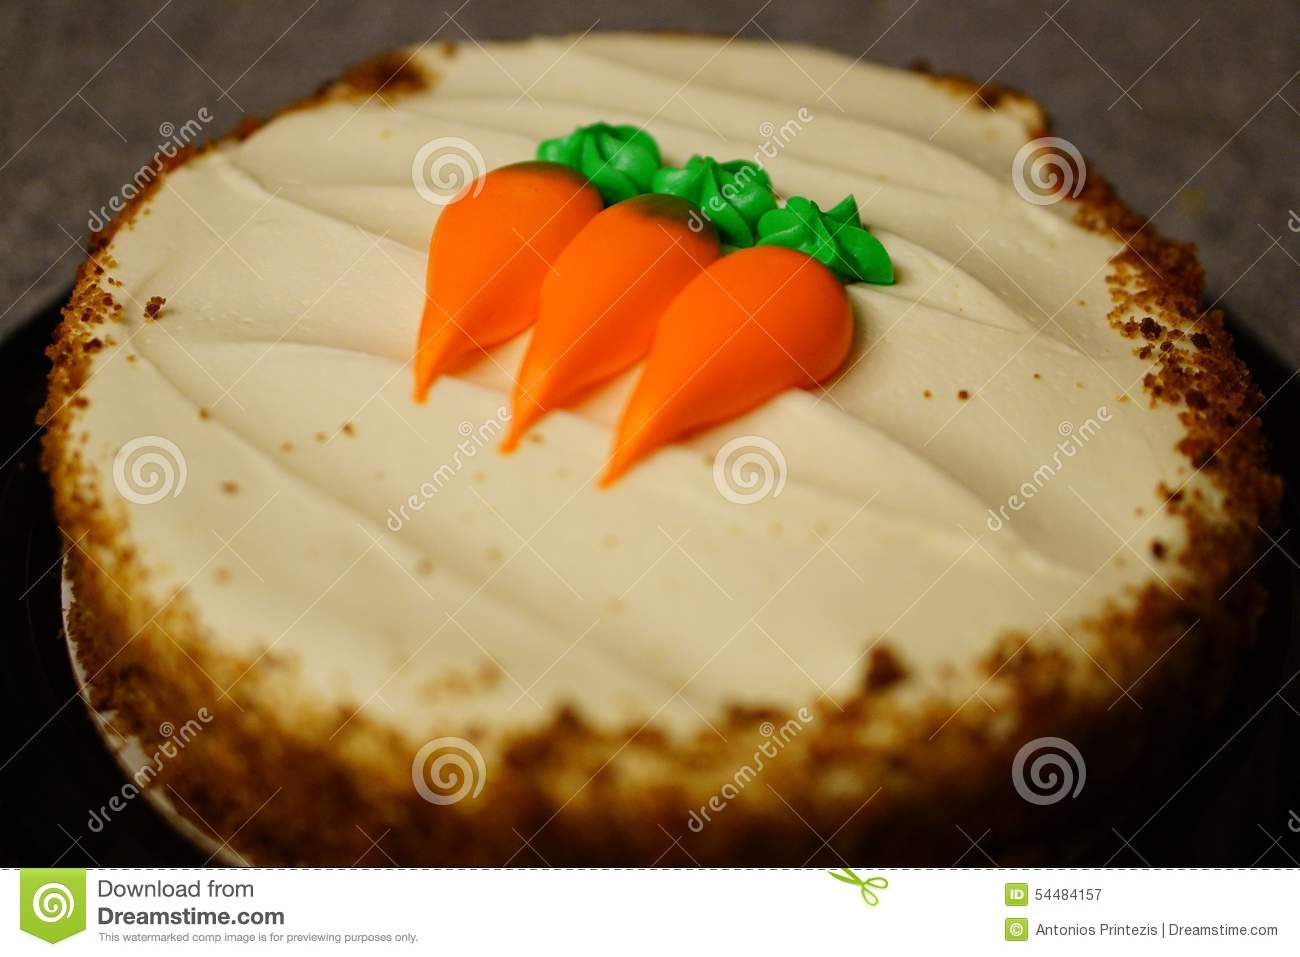 Carrot Cake Stock Image Image Of Table Carrots Carrot 54484157